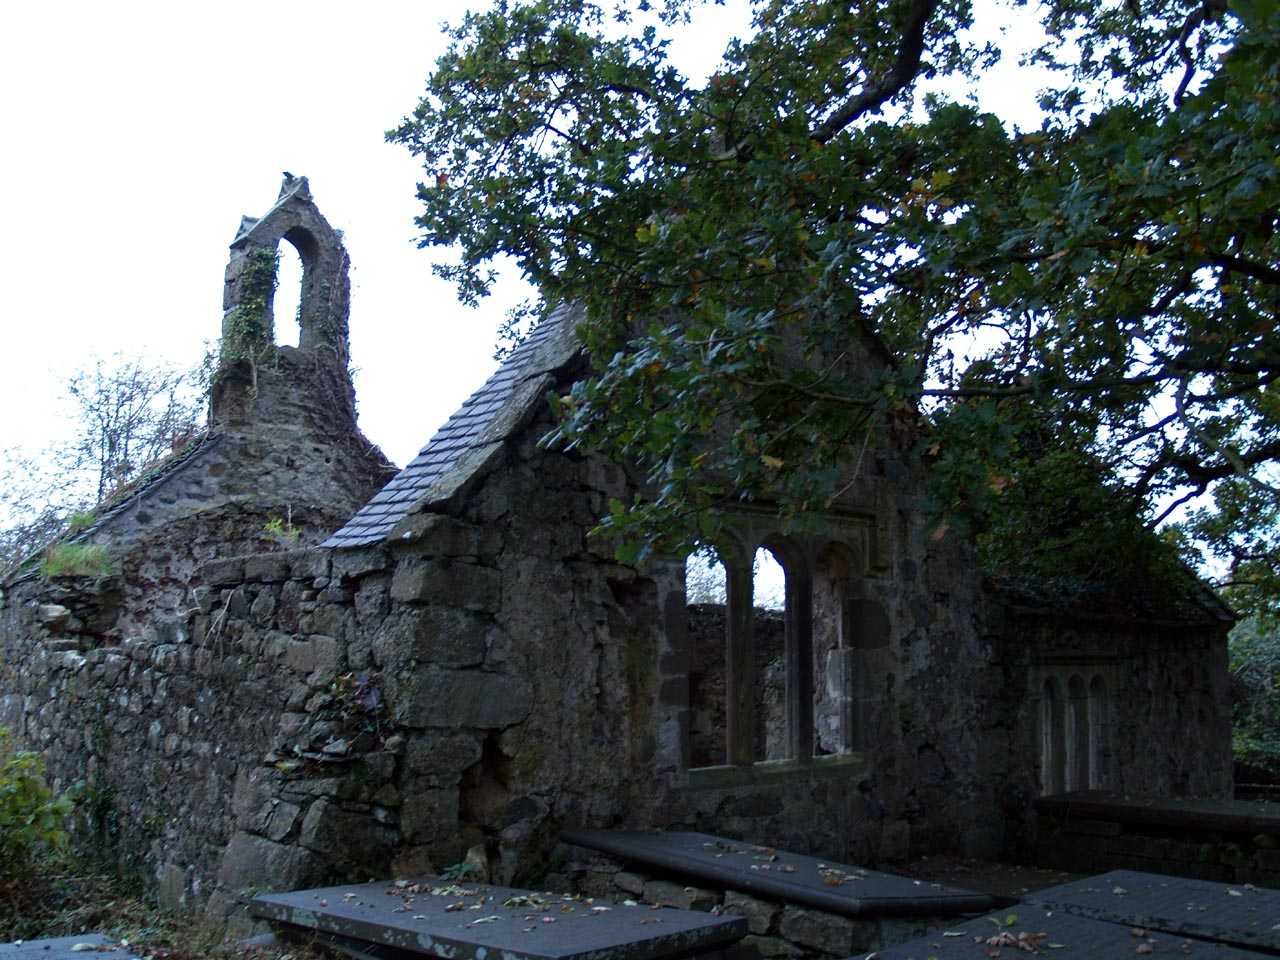 Llanfihangel Ysceifiog (Pentre Berw) Church - abandoned in the 1840's